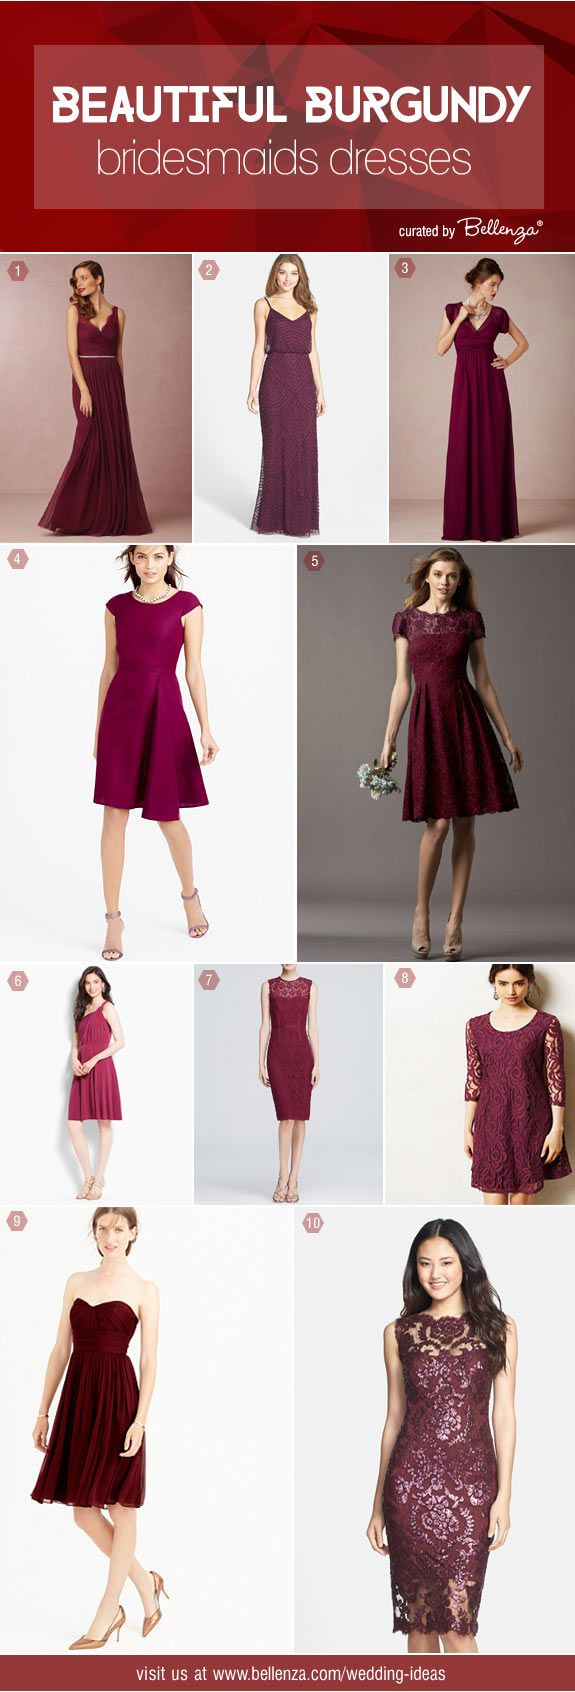 Best 25 classic bridesmaids dresses ideas on pinterest elegant burgundy bridesmaids dresses 10 styles from classic to chic to charming ombrellifo Image collections